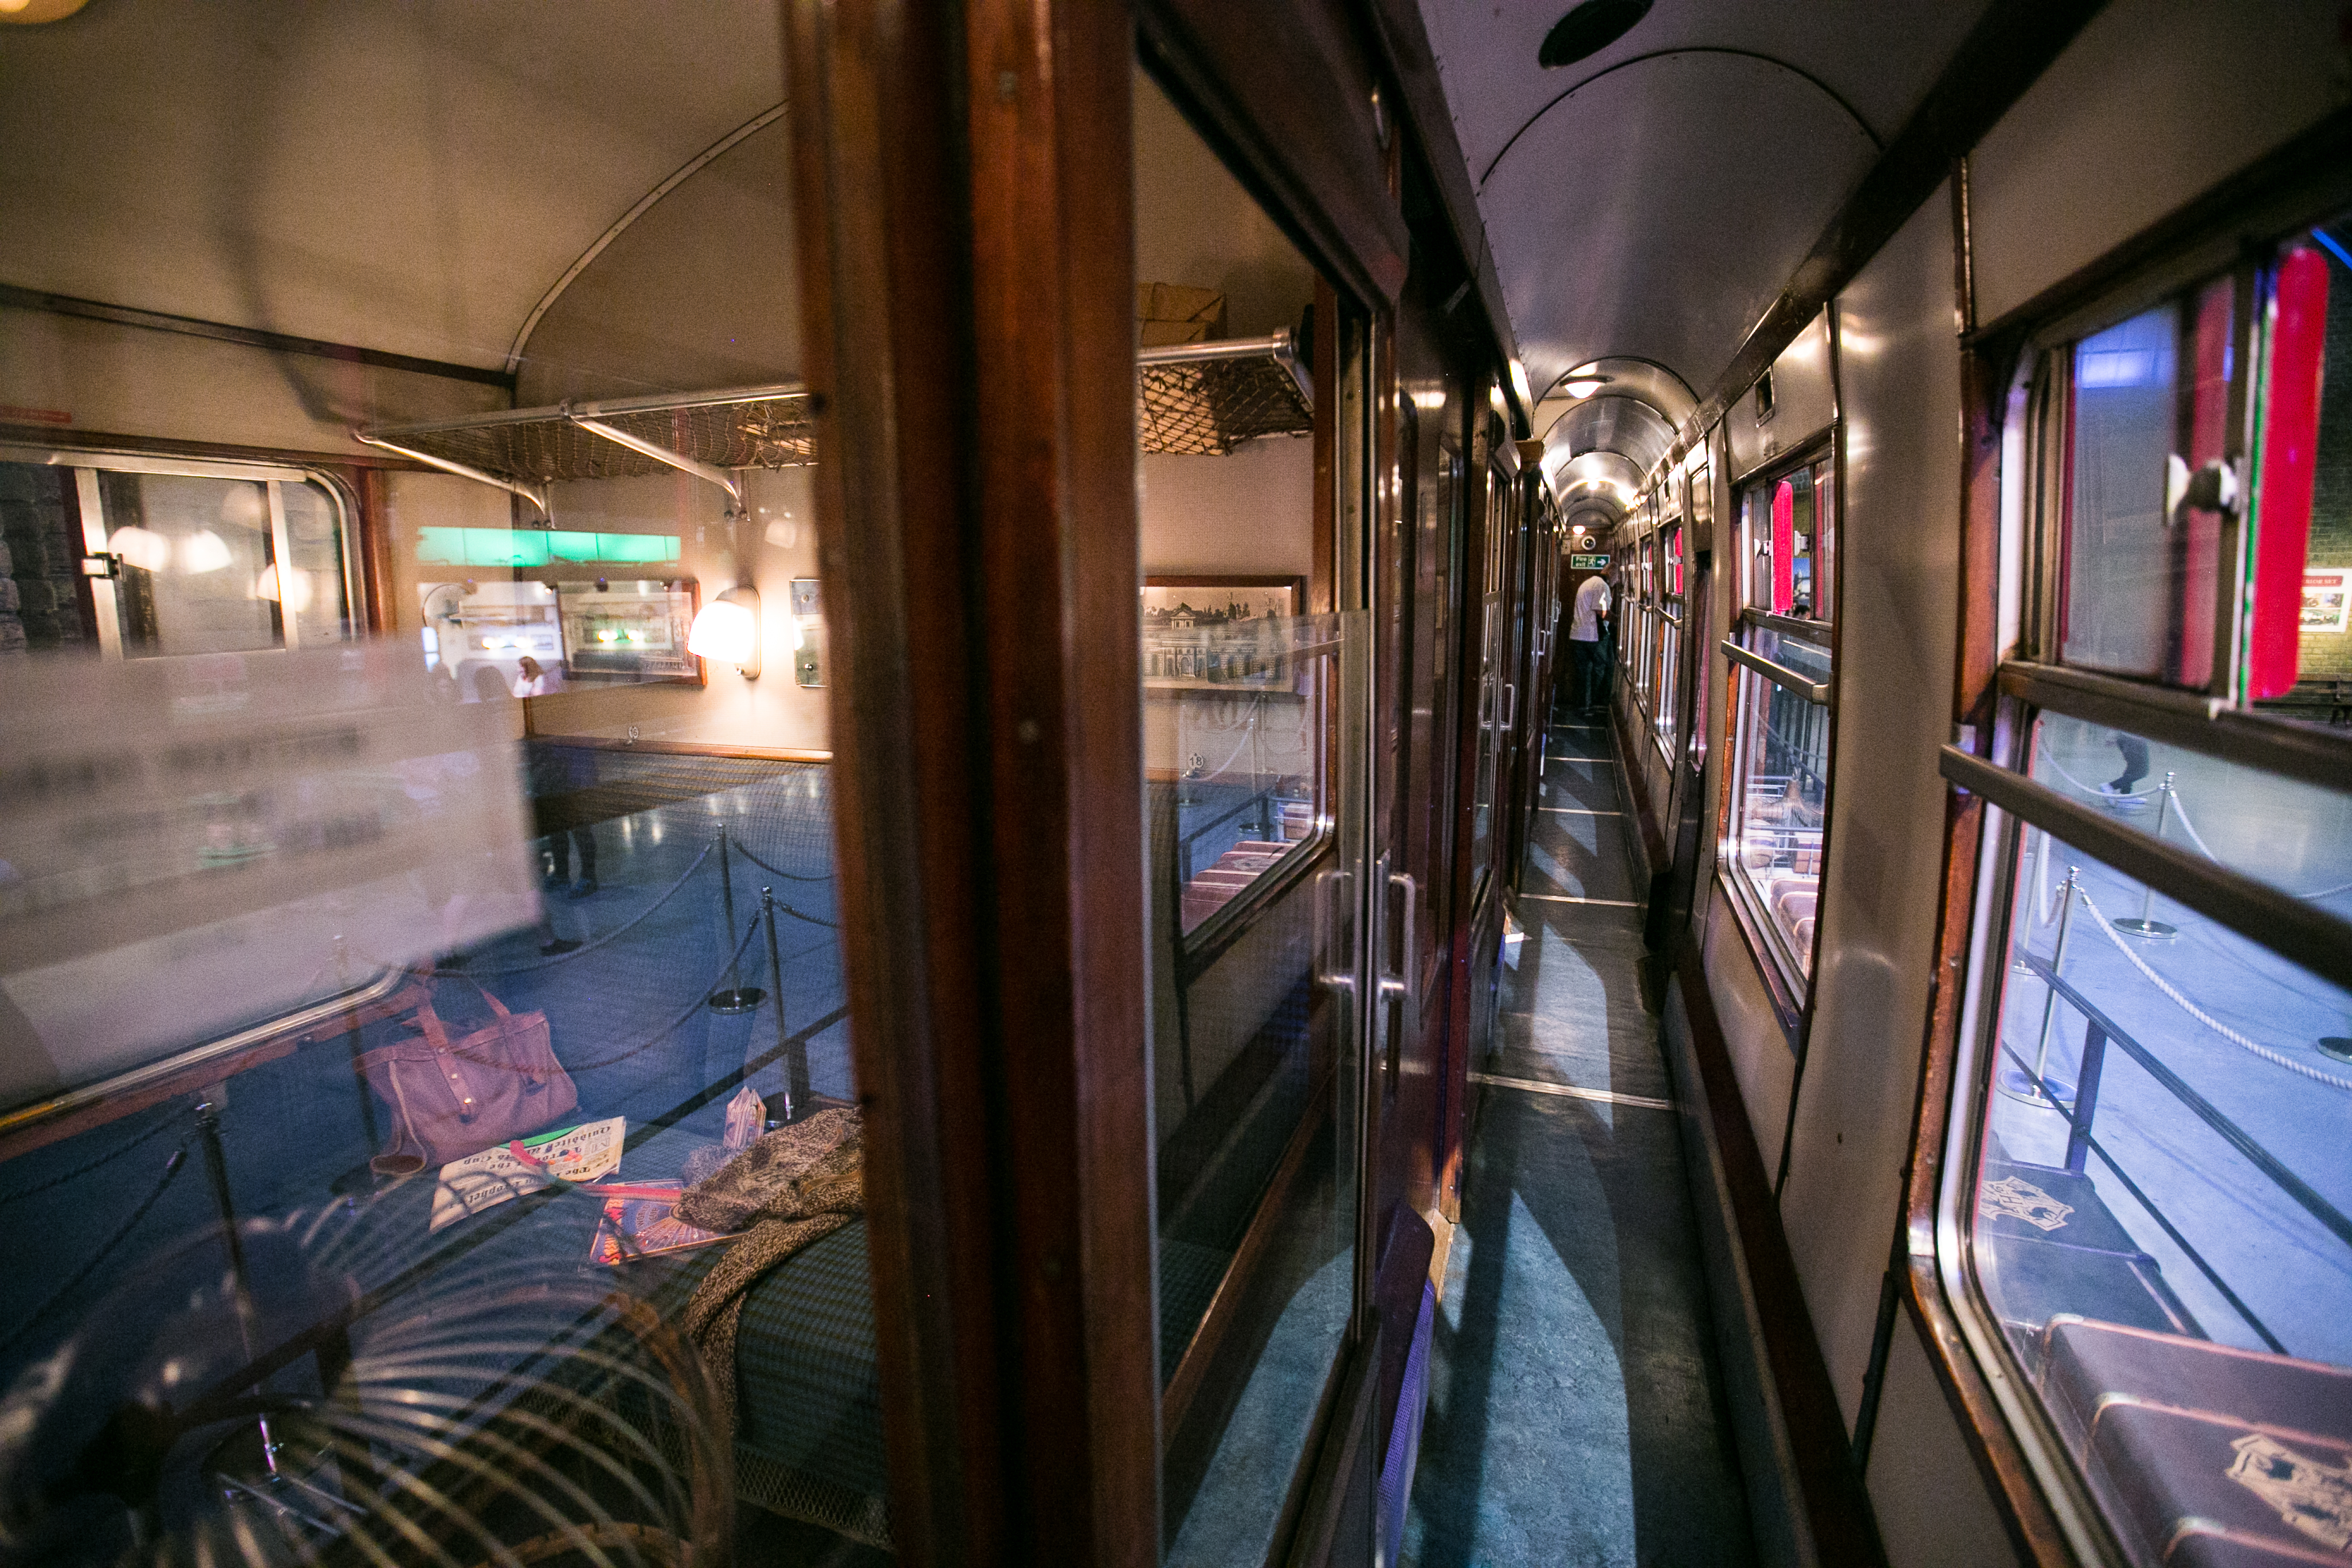 harry-potter-studio-tour-train-interior-1